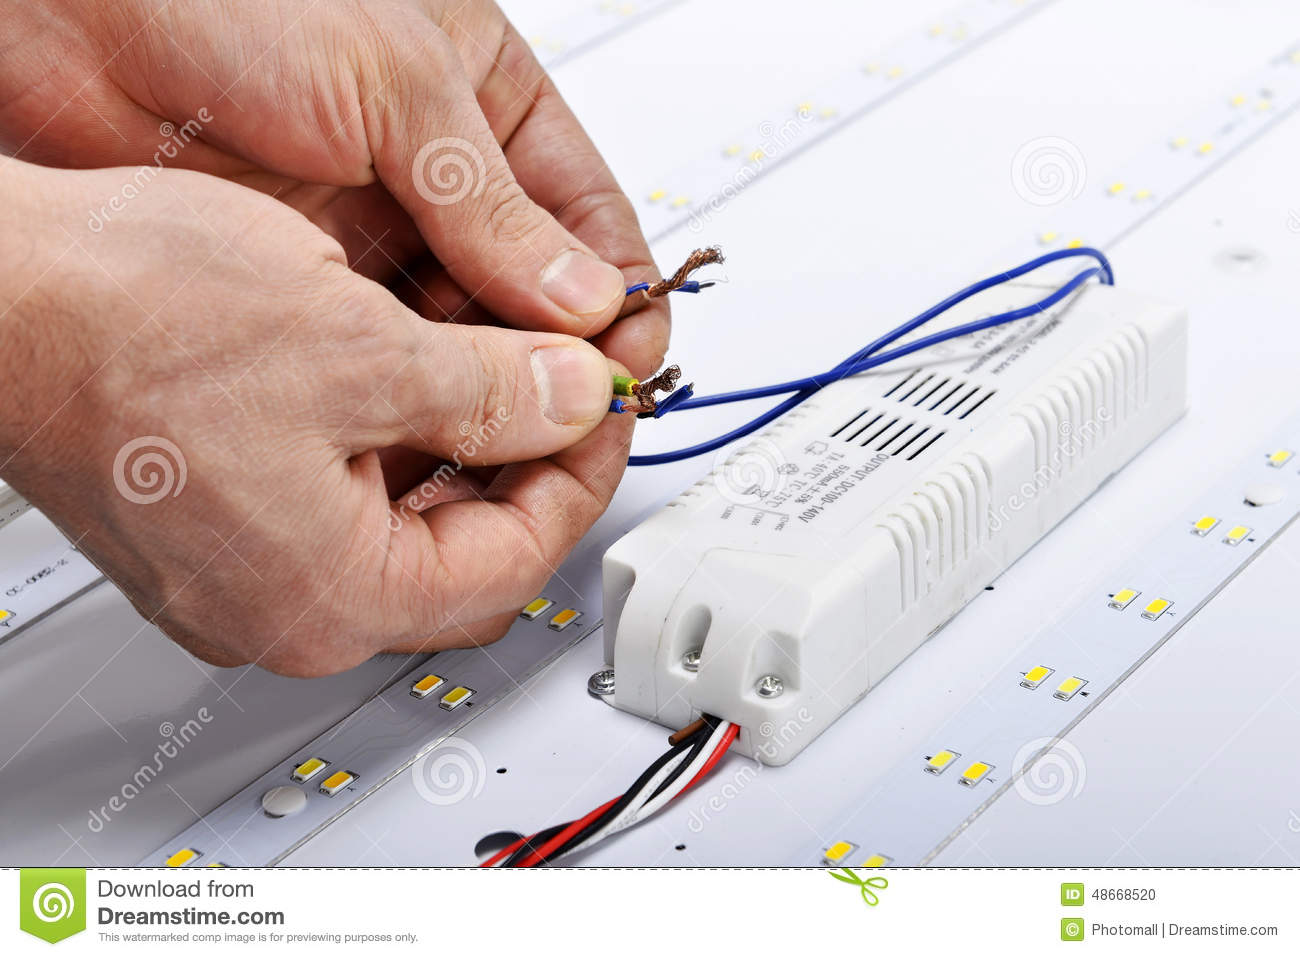 Electrician Hands Connect Wires Of Led Lamp Stock Photo - Image of ...